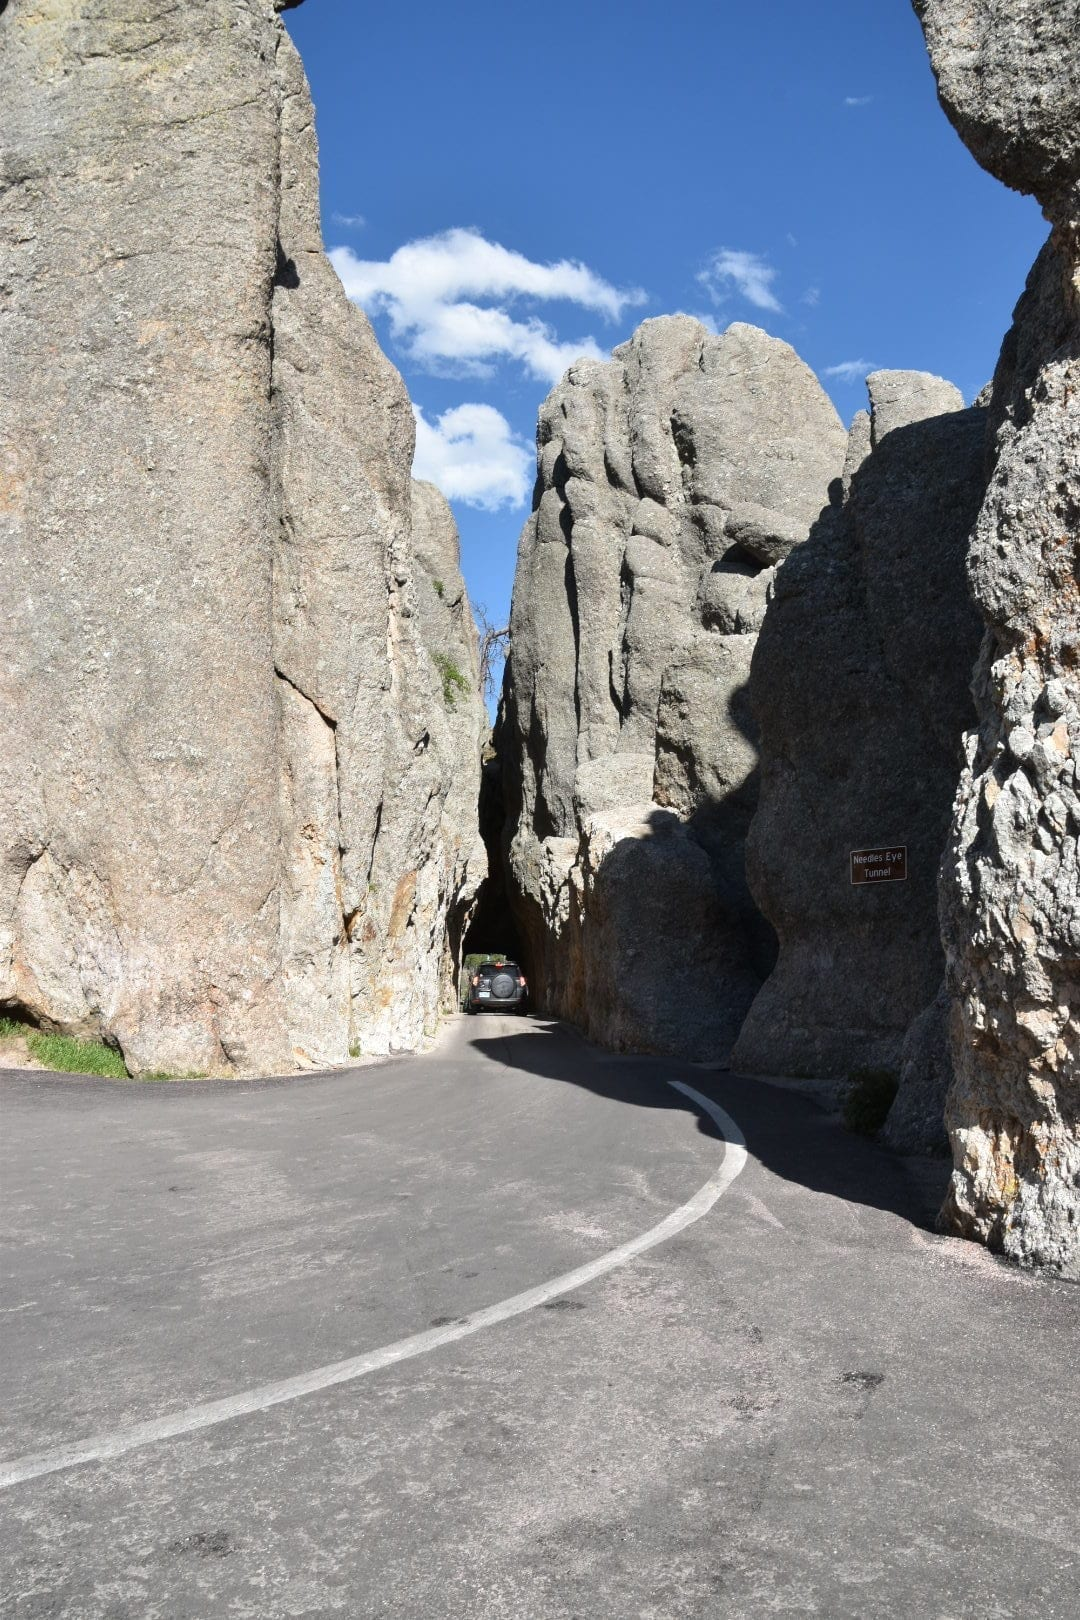 Needles Highway Tunnel at Custer State Park